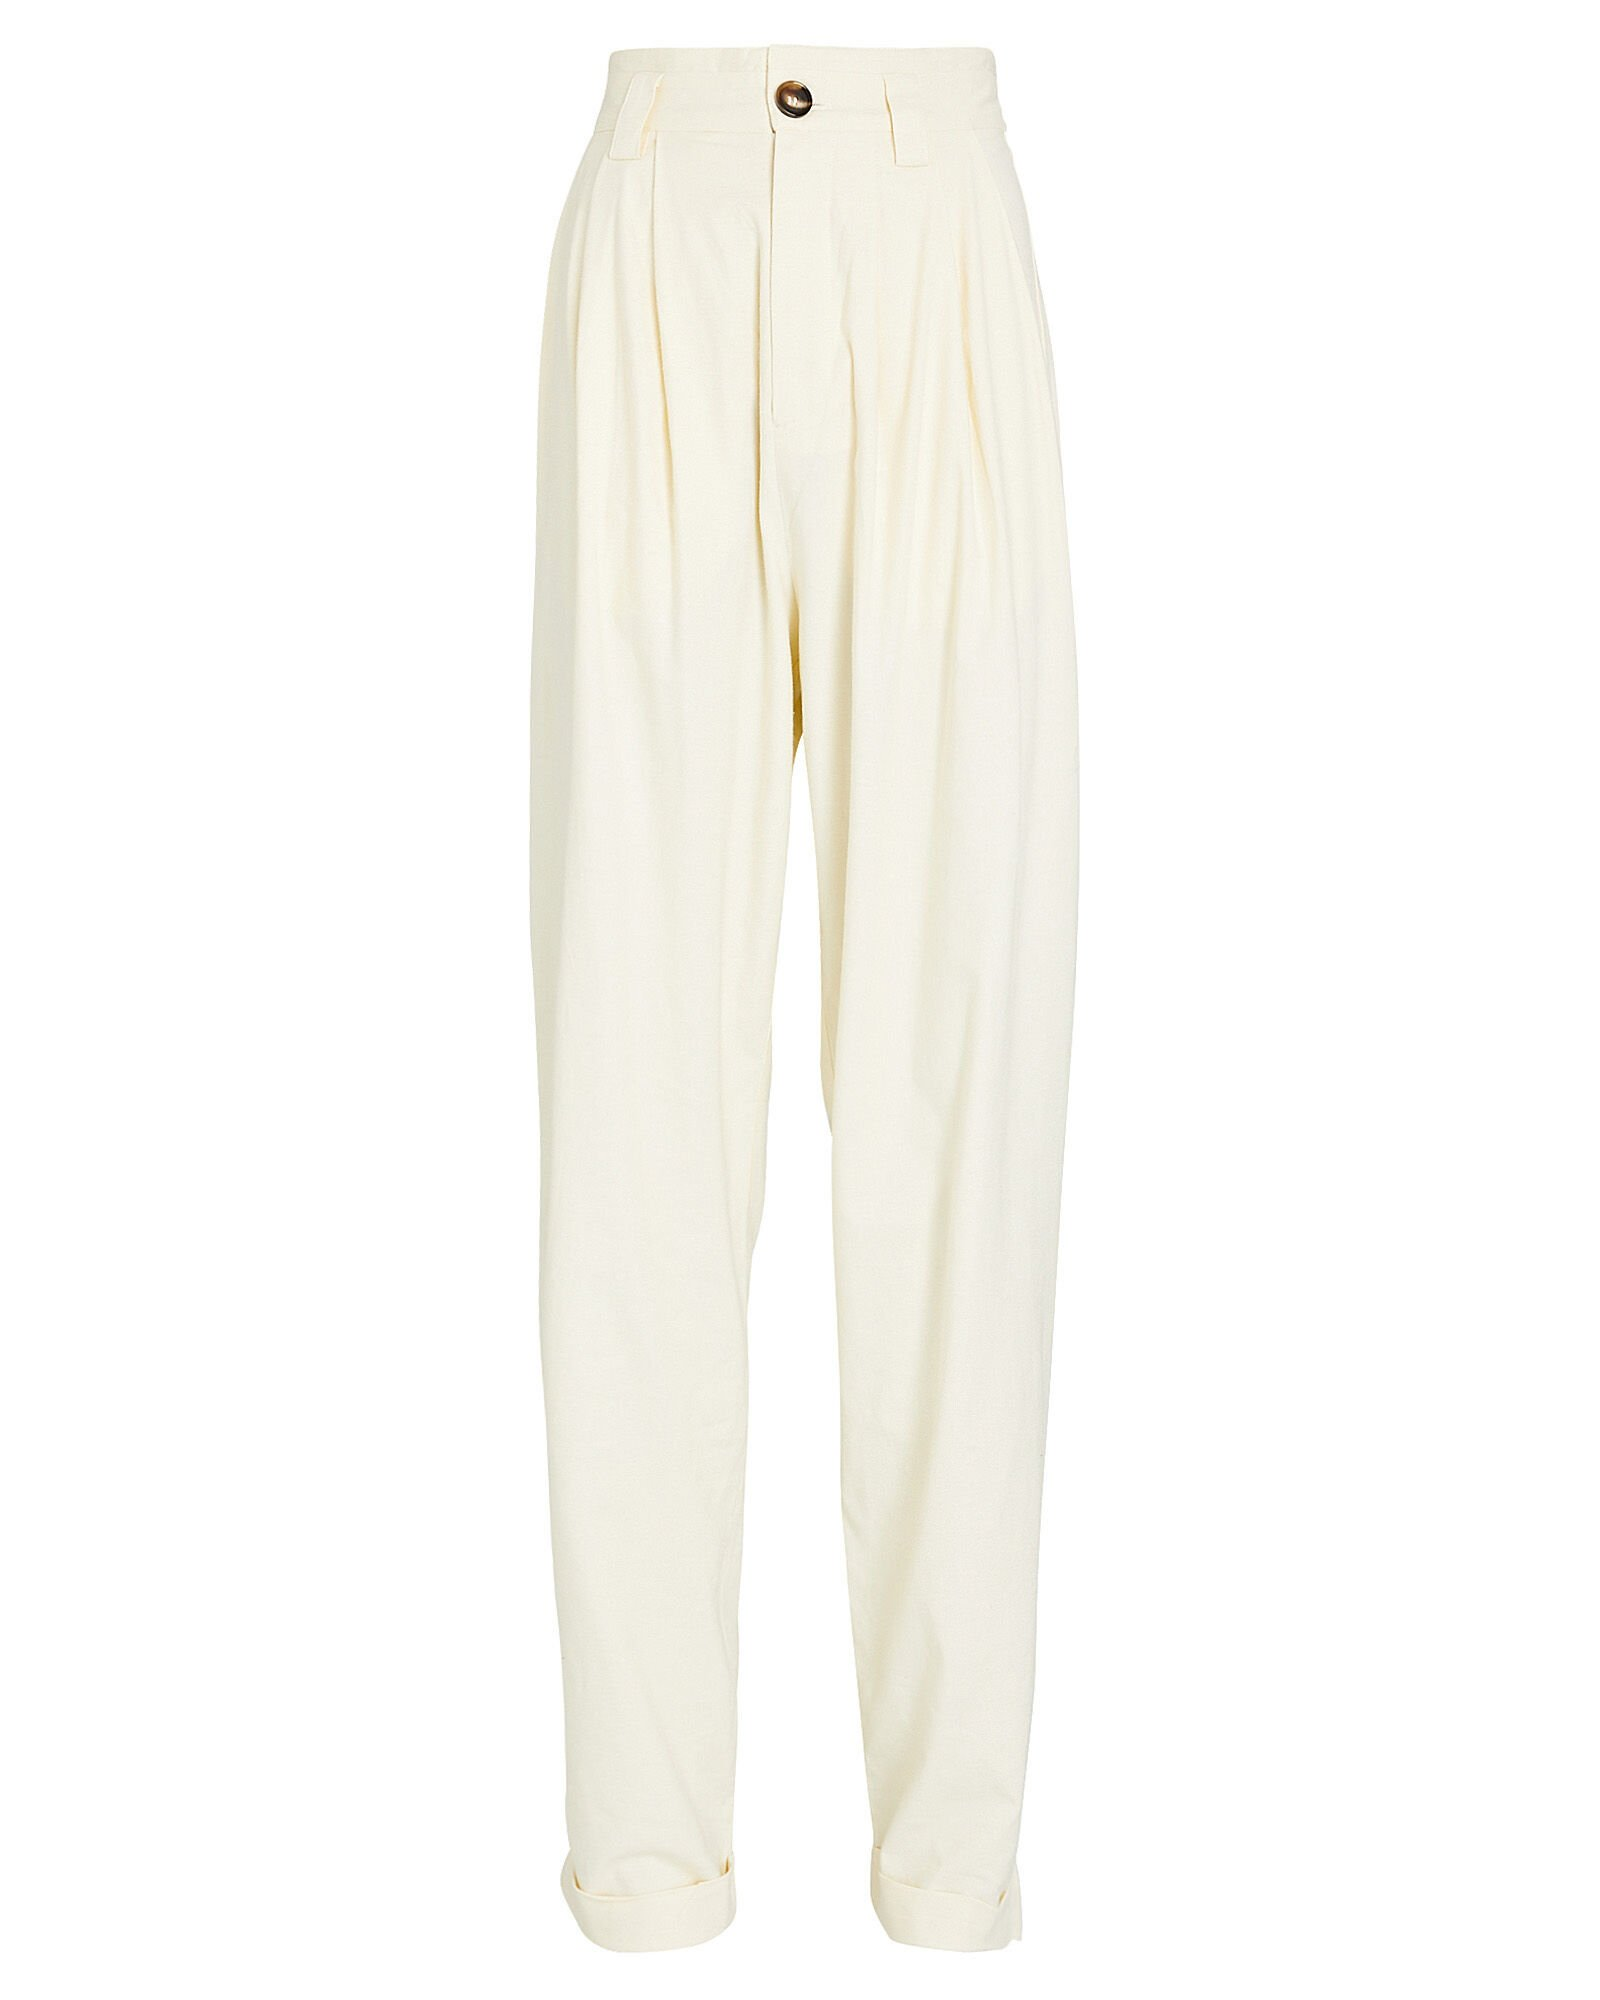 Ginevra Pleated High-Rise Pants, IVORY, hi-res